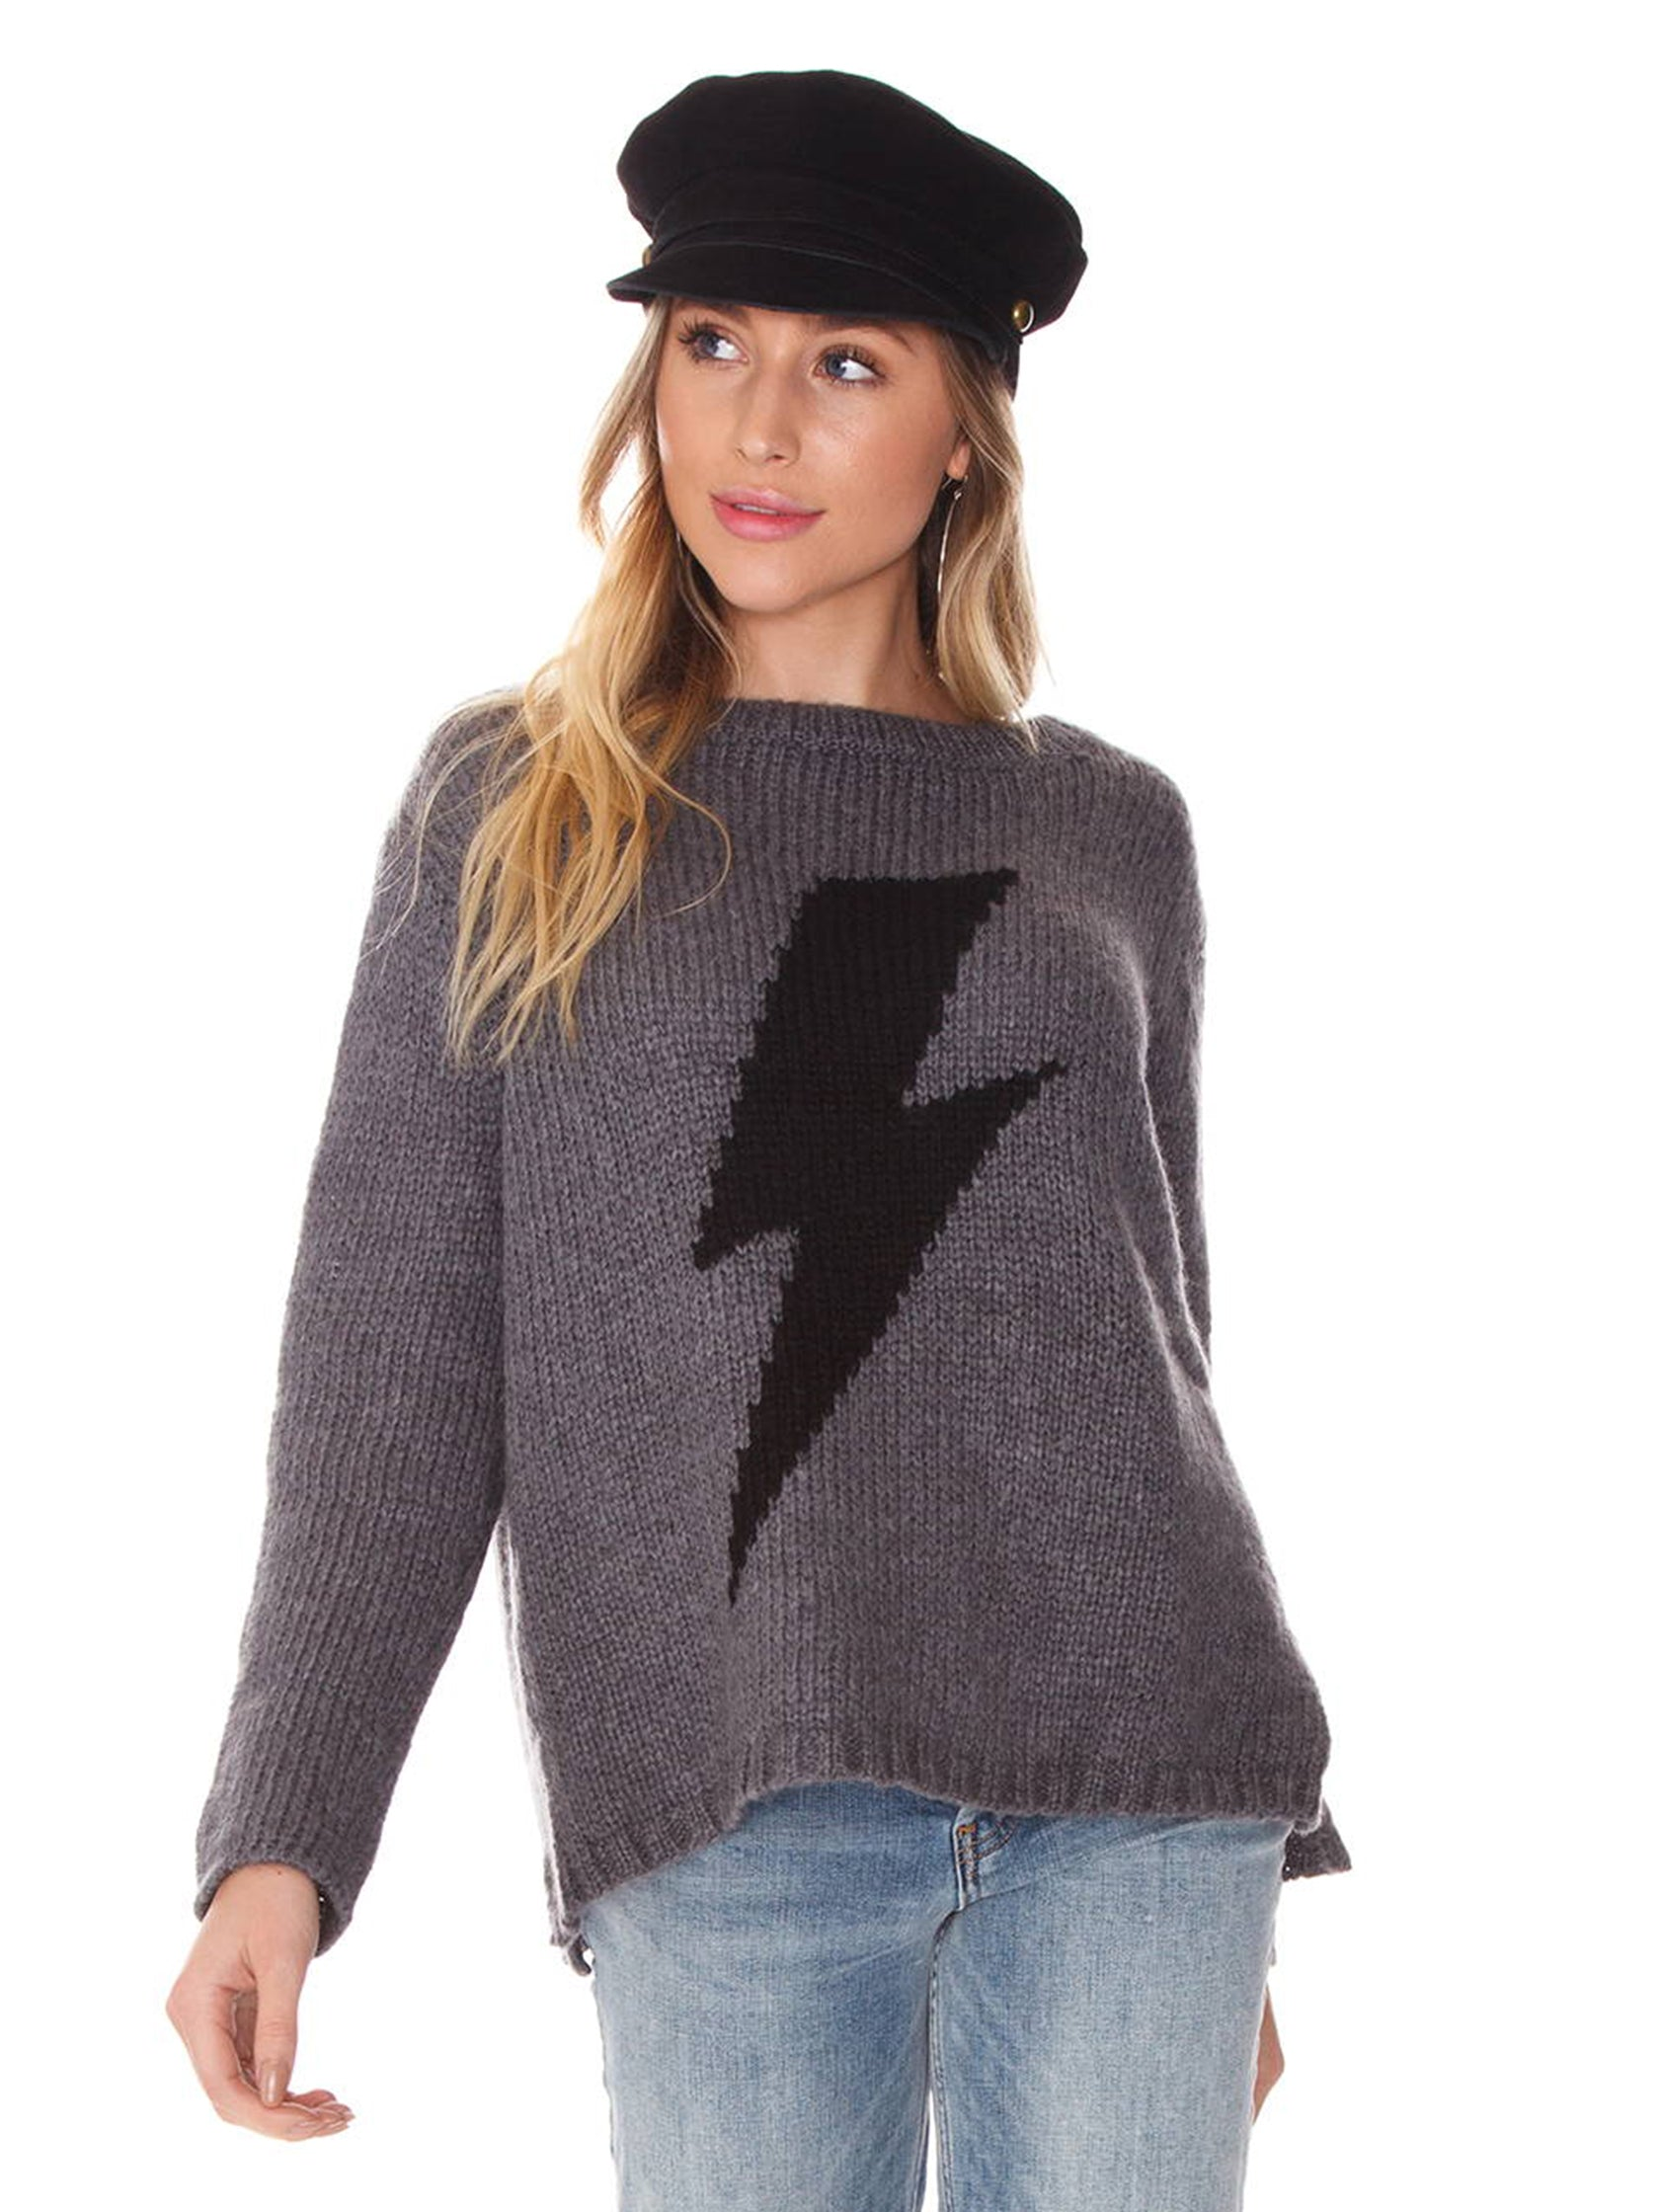 Woman wearing a sweater rental from Wooden Ships called Bolt Crewneck